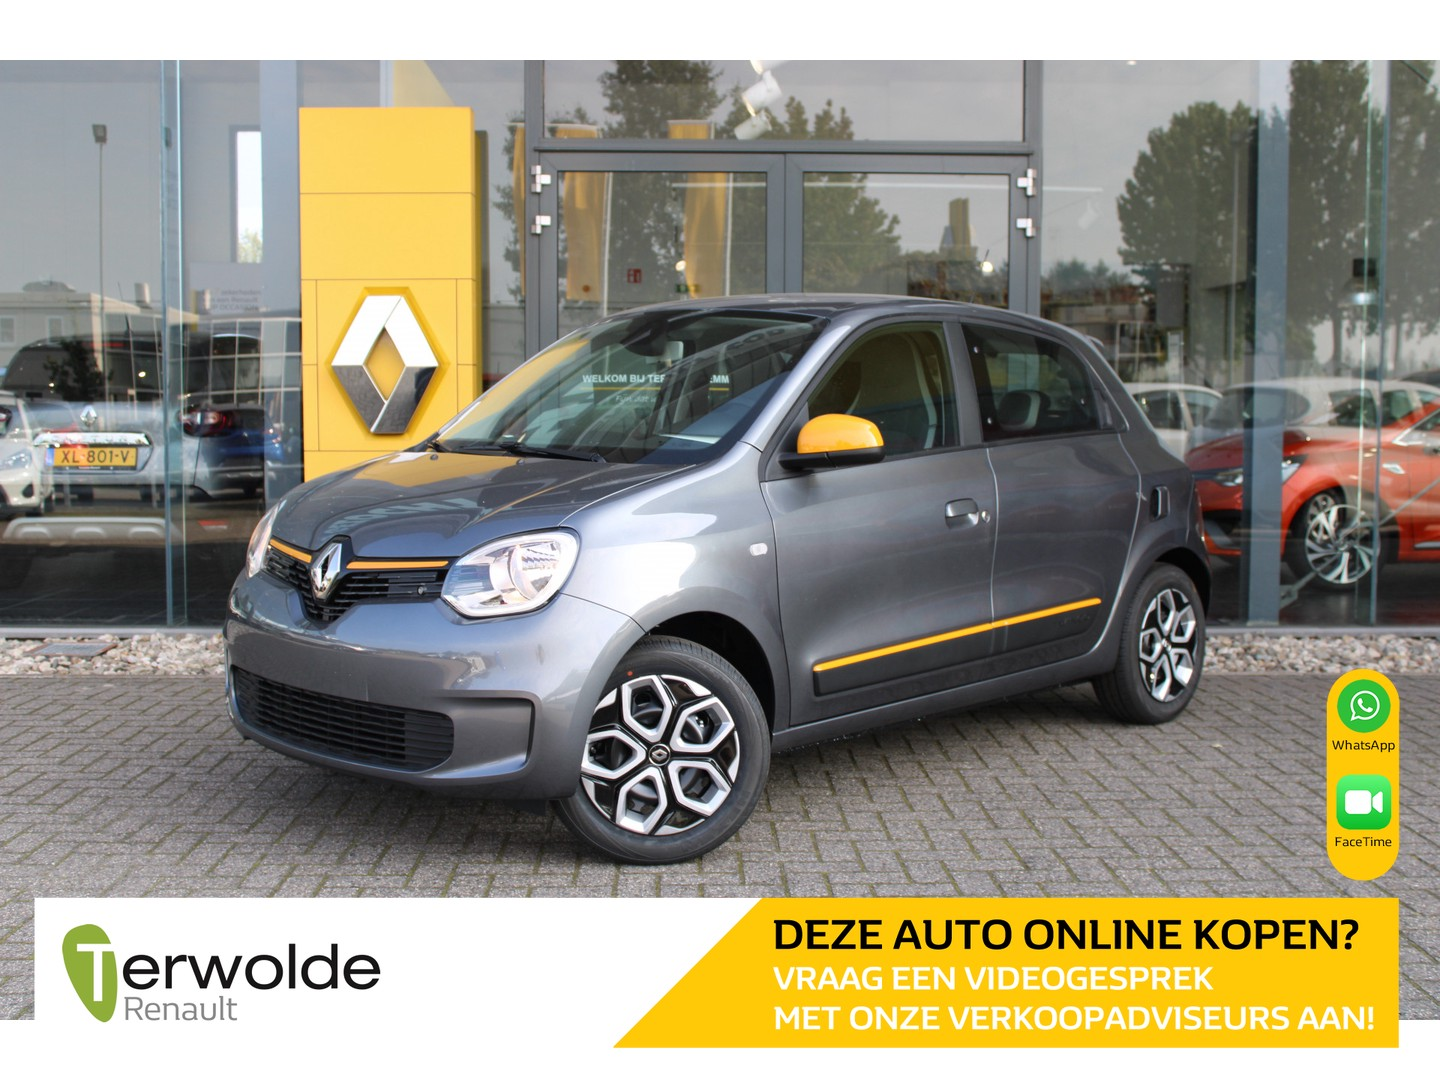 Renault Twingo 1.0 sce collection private lease vanaf € 229,-! eur 1086,- korting! financiering tegen 3,9% rente!